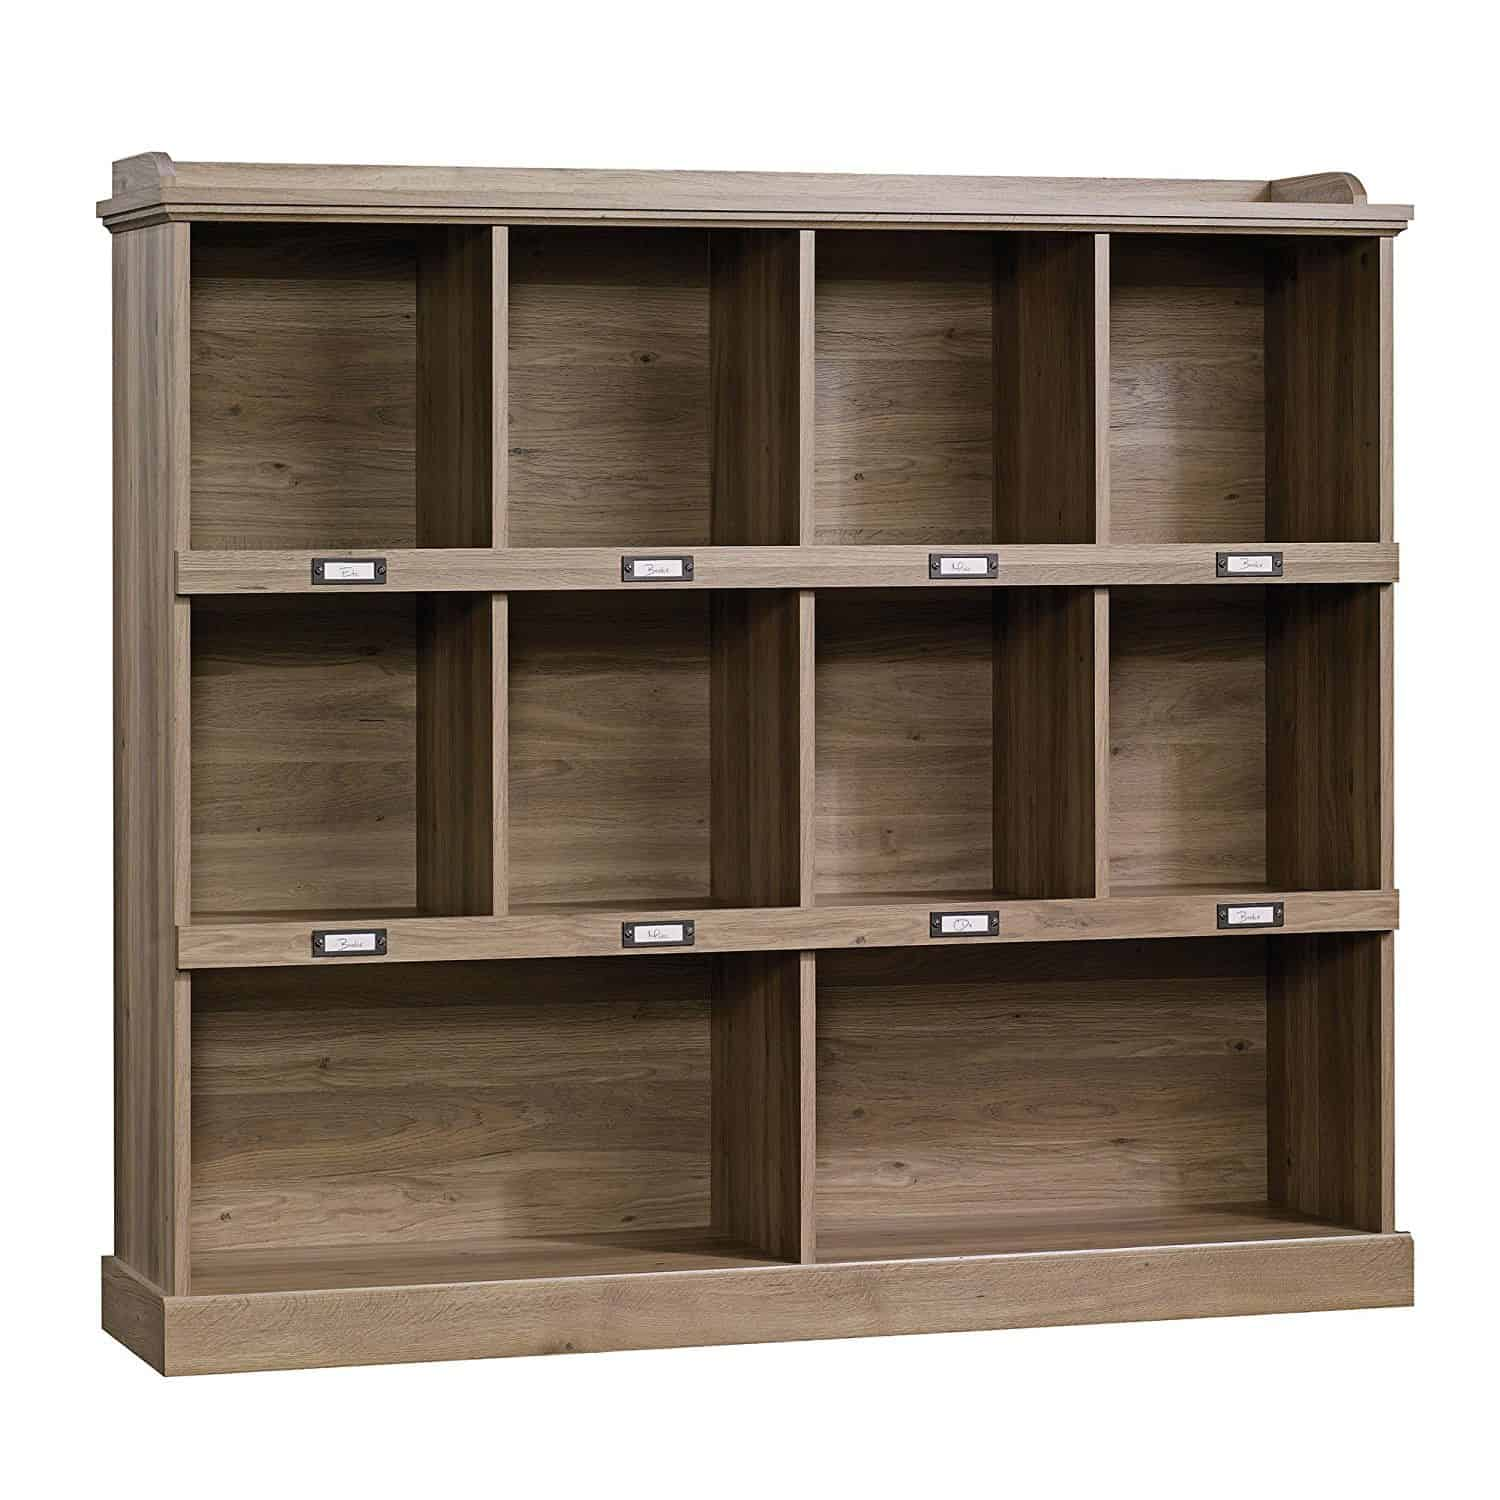 8 Great Small Bookcase And Bookshelf Options For 2019